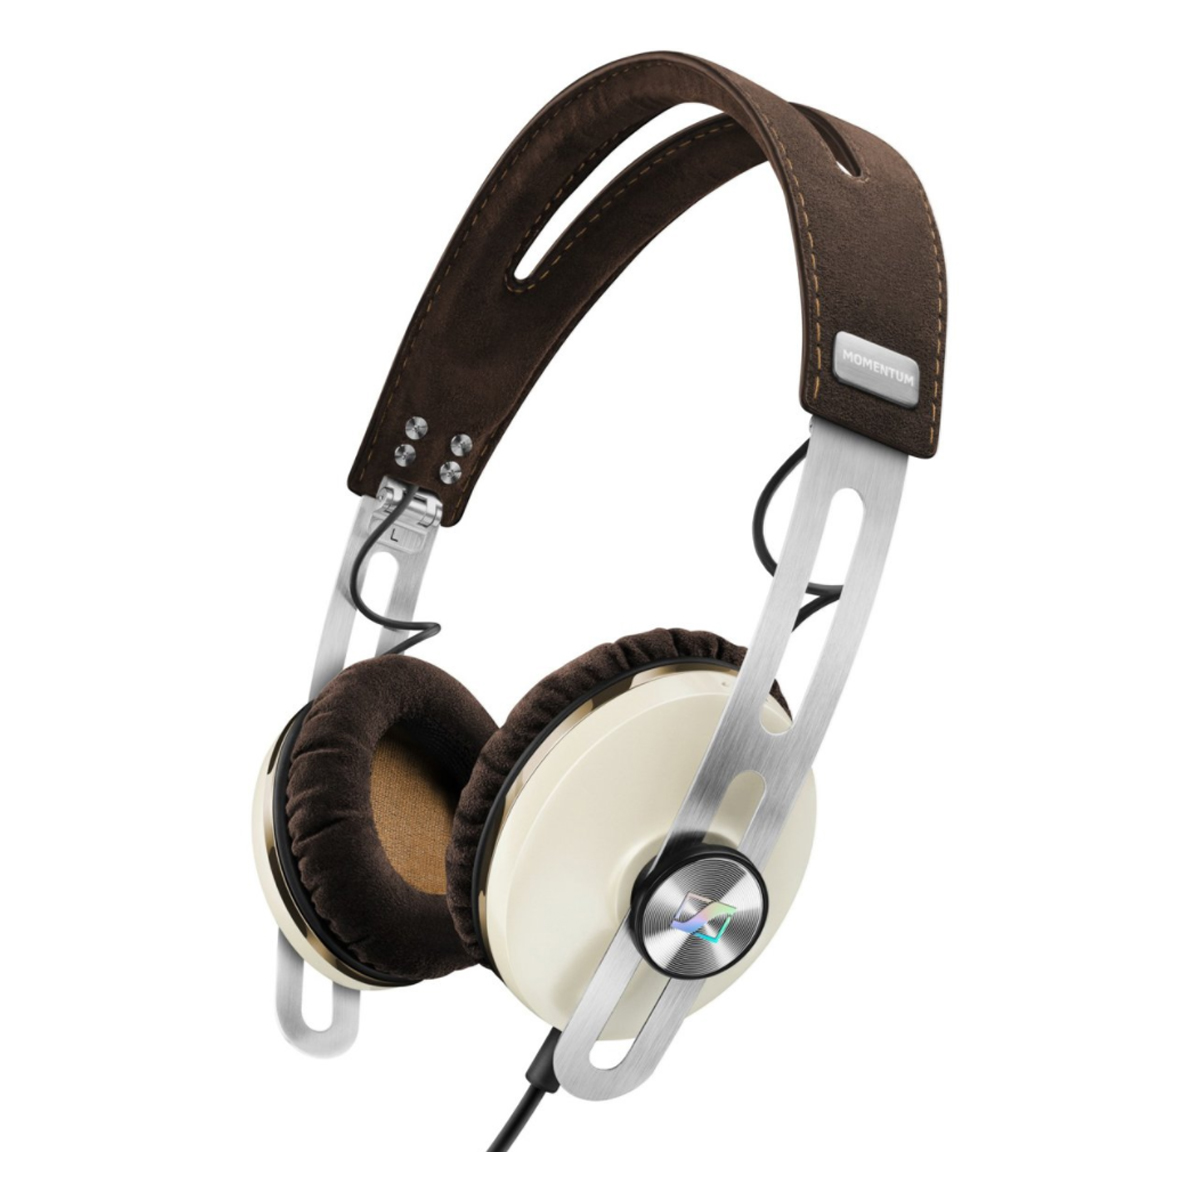 Sennheiser Momentum 2 On-Ear Headphones